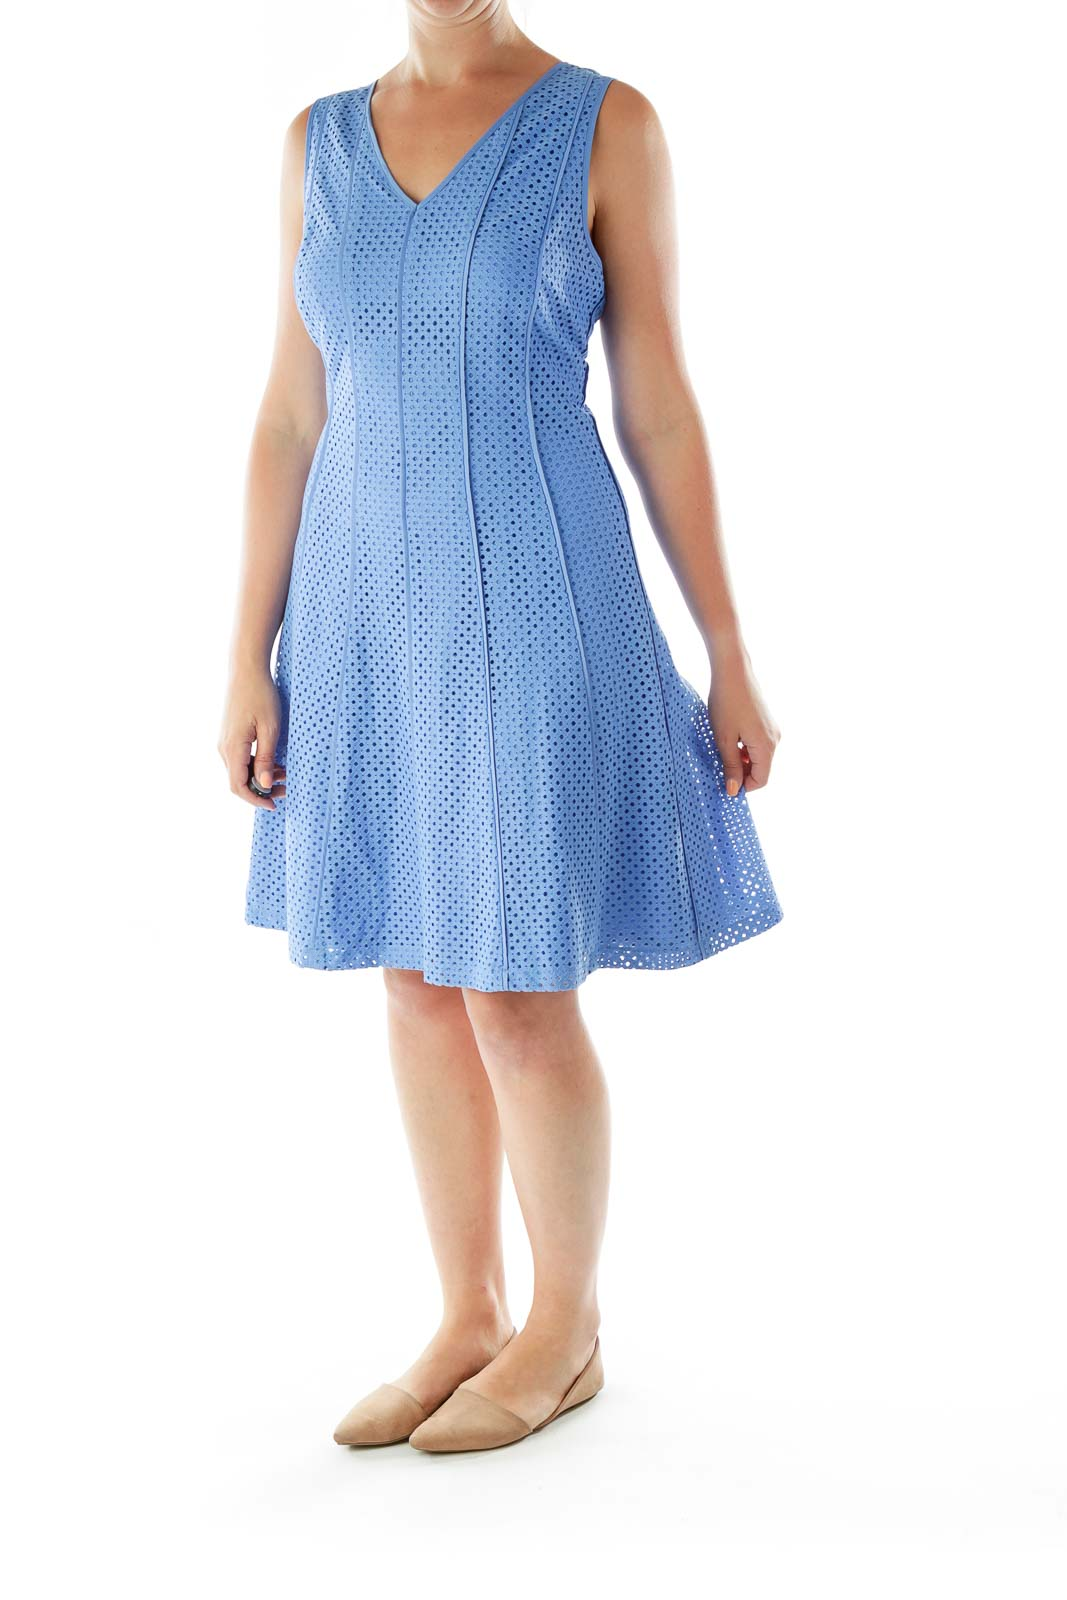 Blue Lines Holes Day Dress